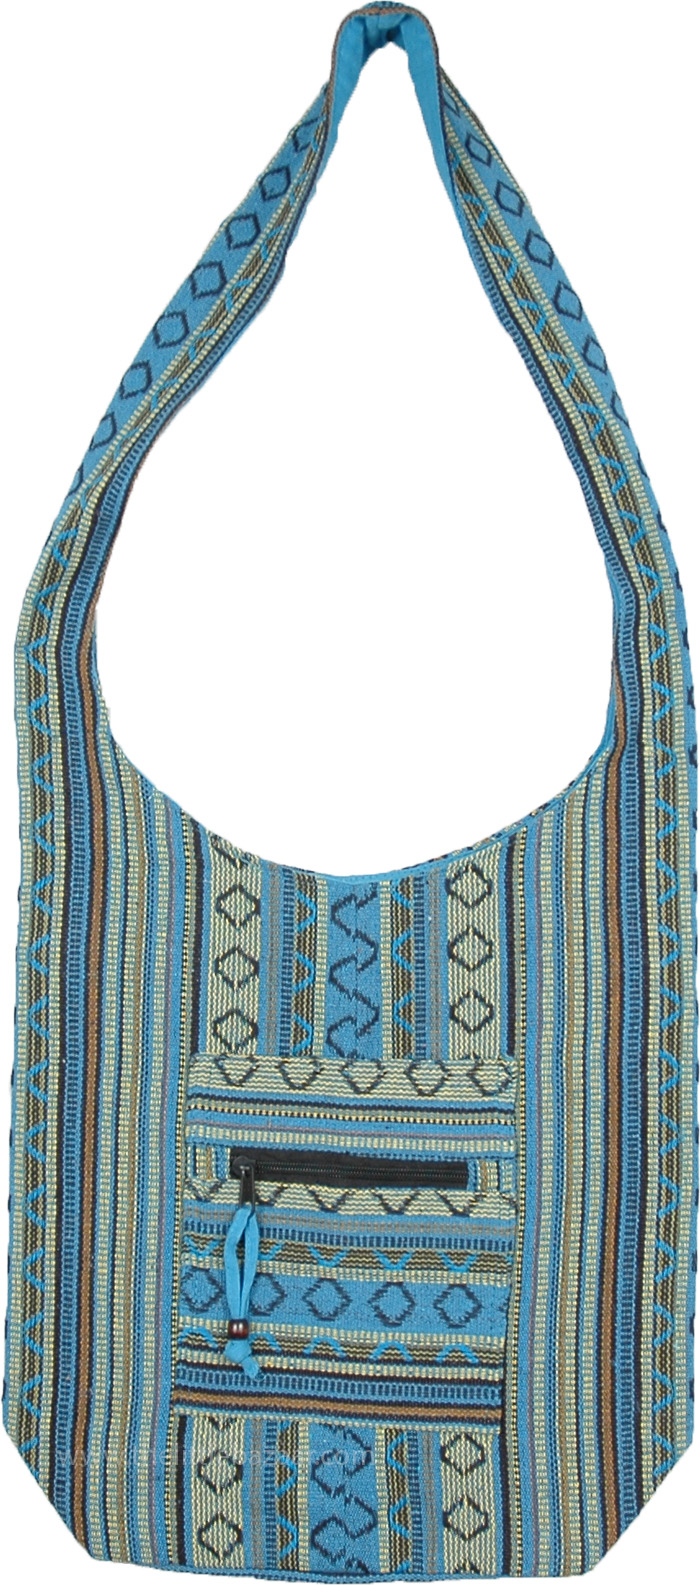 Turquoise Color Hippie Style Ikat Weave Boho Shoulder Bag